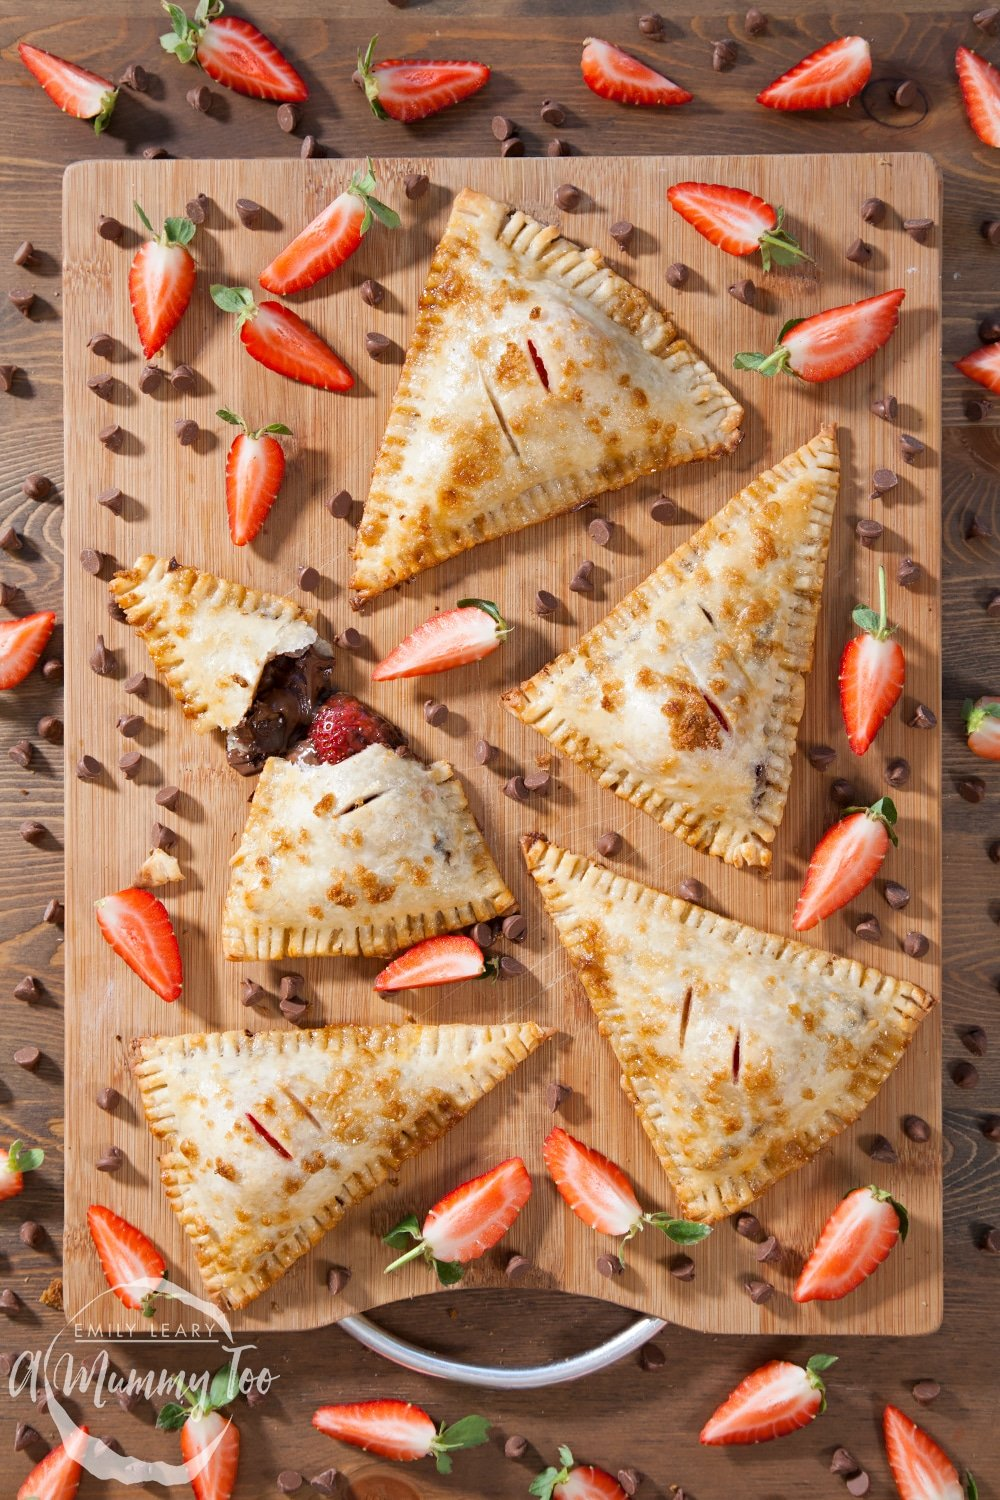 Gluten-free chocolate and strawberry parcels - made with Jus Rol's gluten-free puff pastry